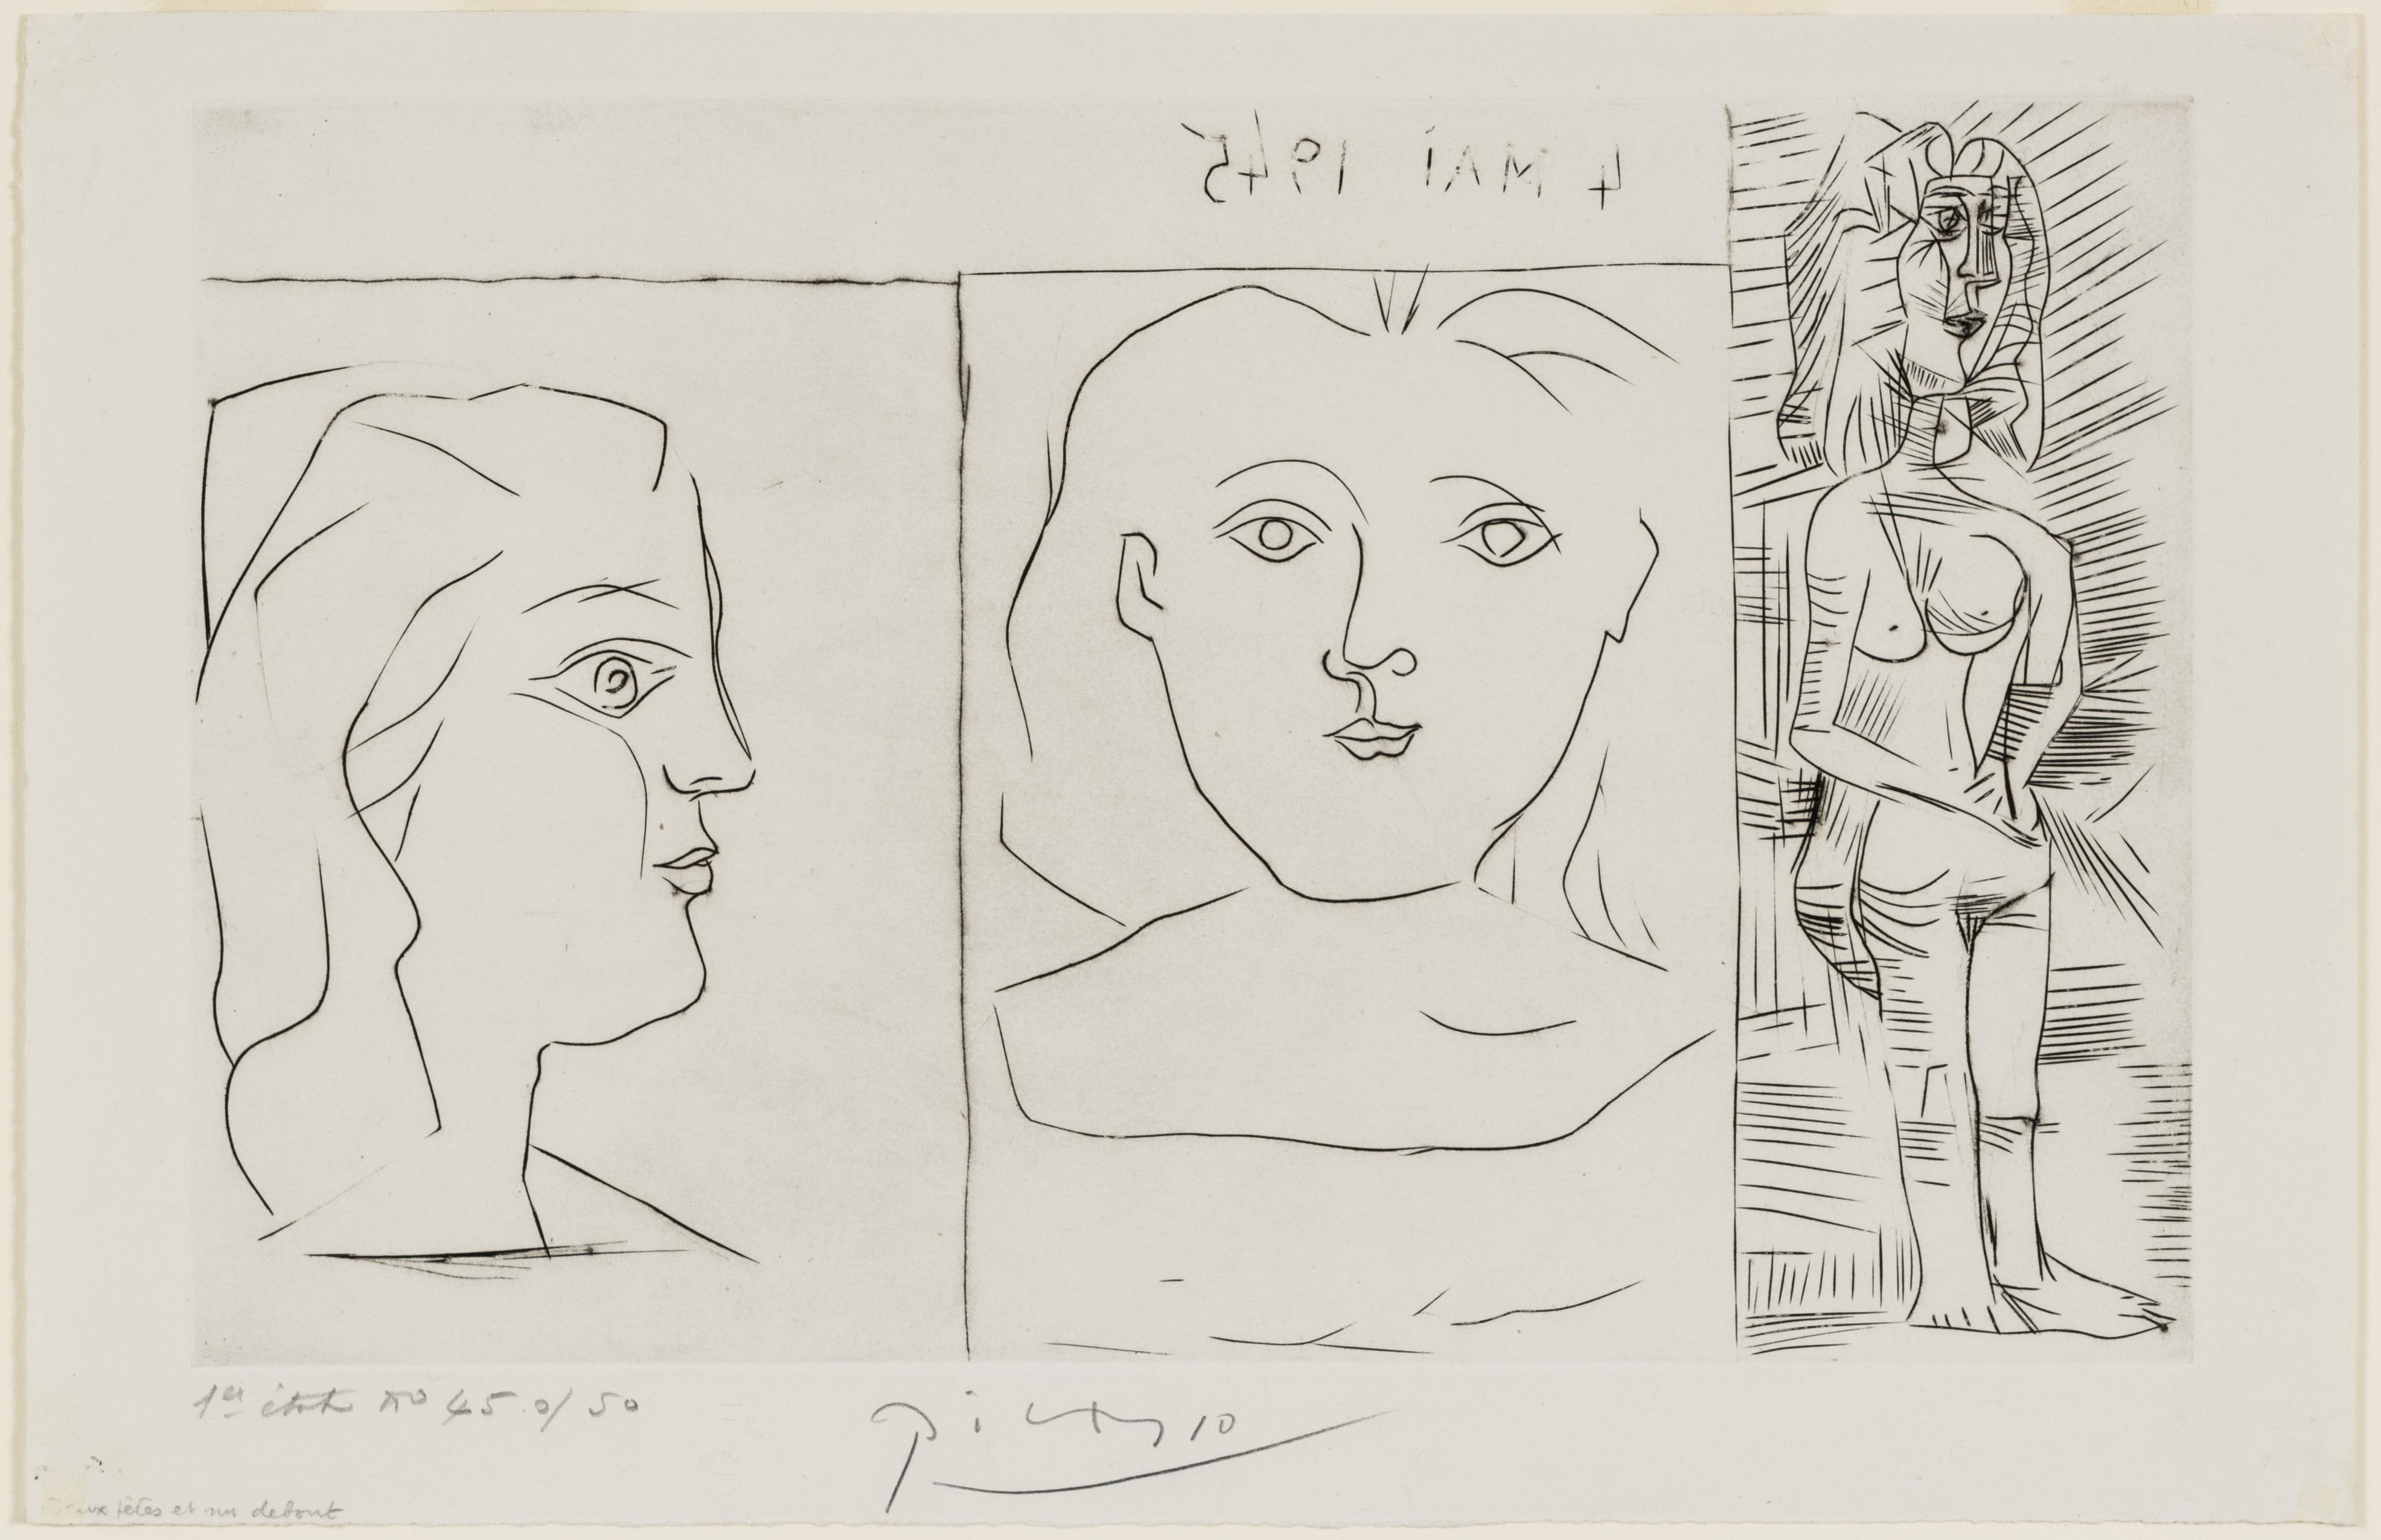 Pablo Picasso, May 4, 1945, 1945